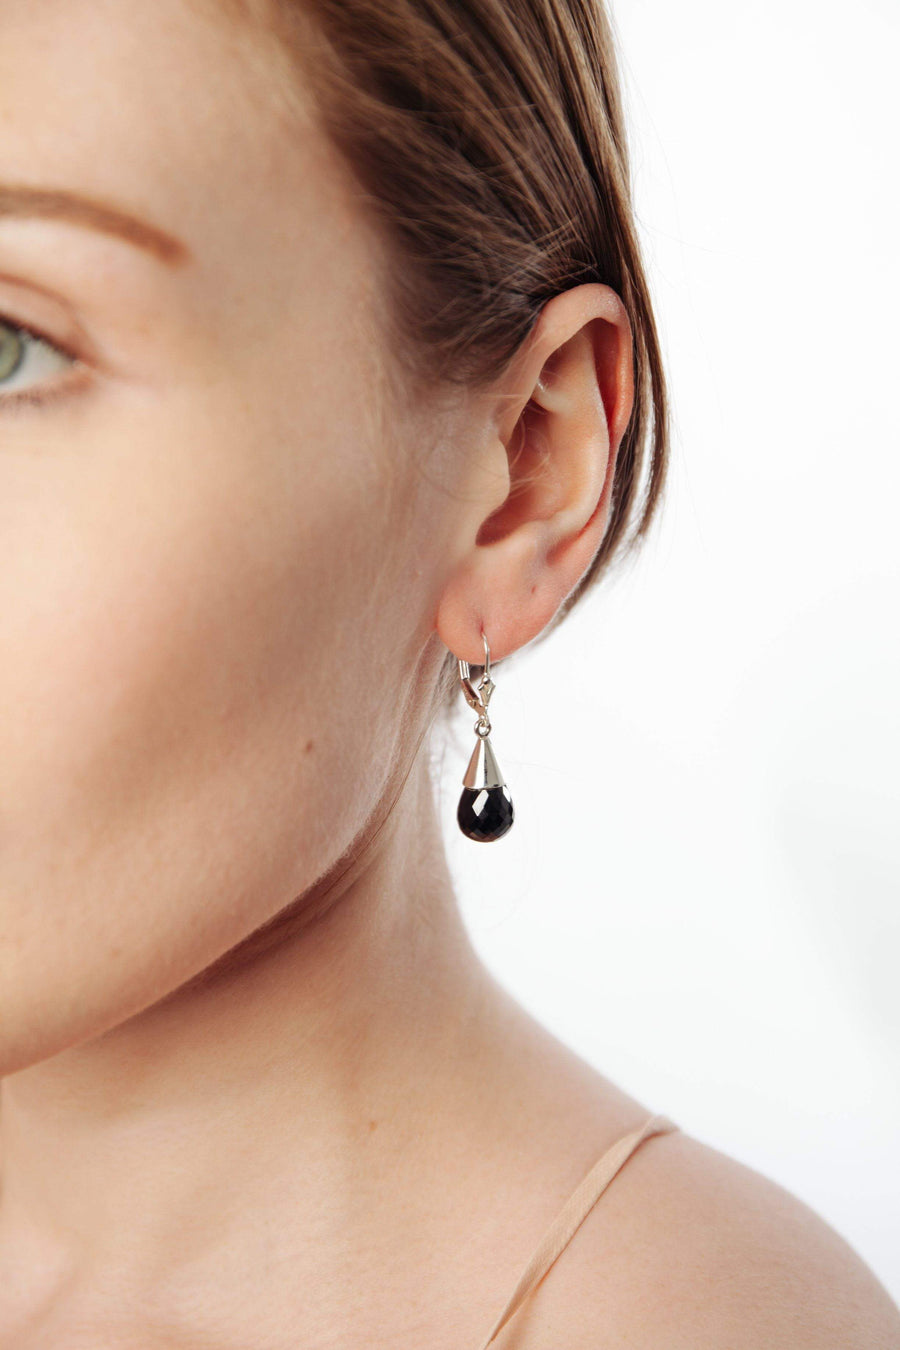 Black Onyx Teardrop Earrings - Inaya Jewelry